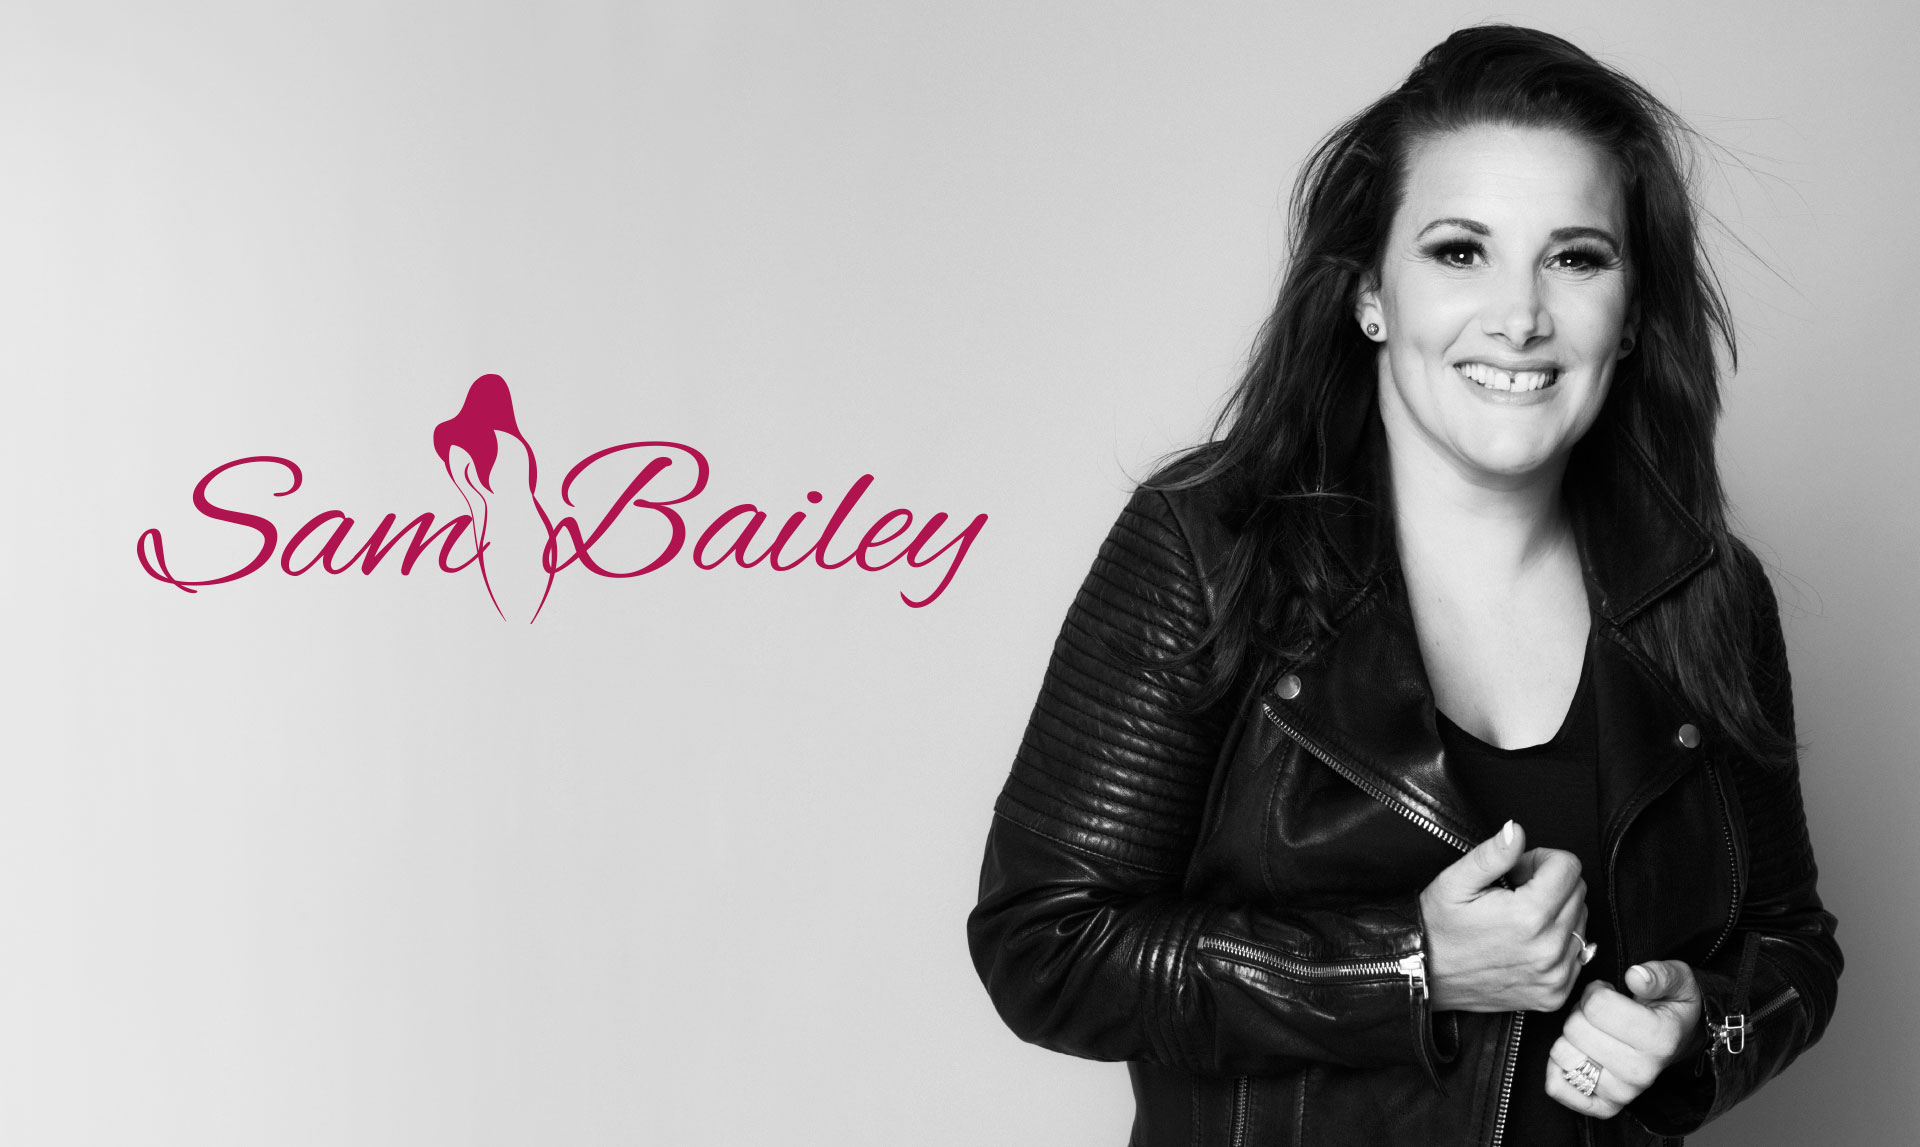 Sam Bailey Fan Club